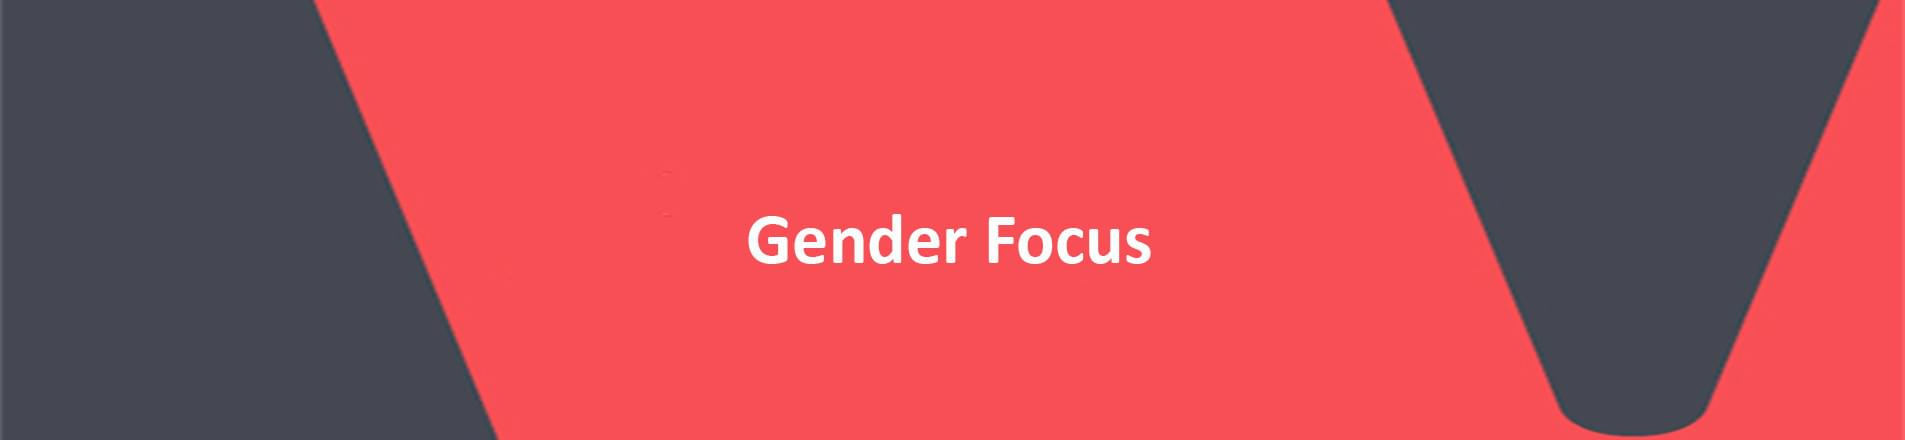 Image of the words gender focus in white font on a red background